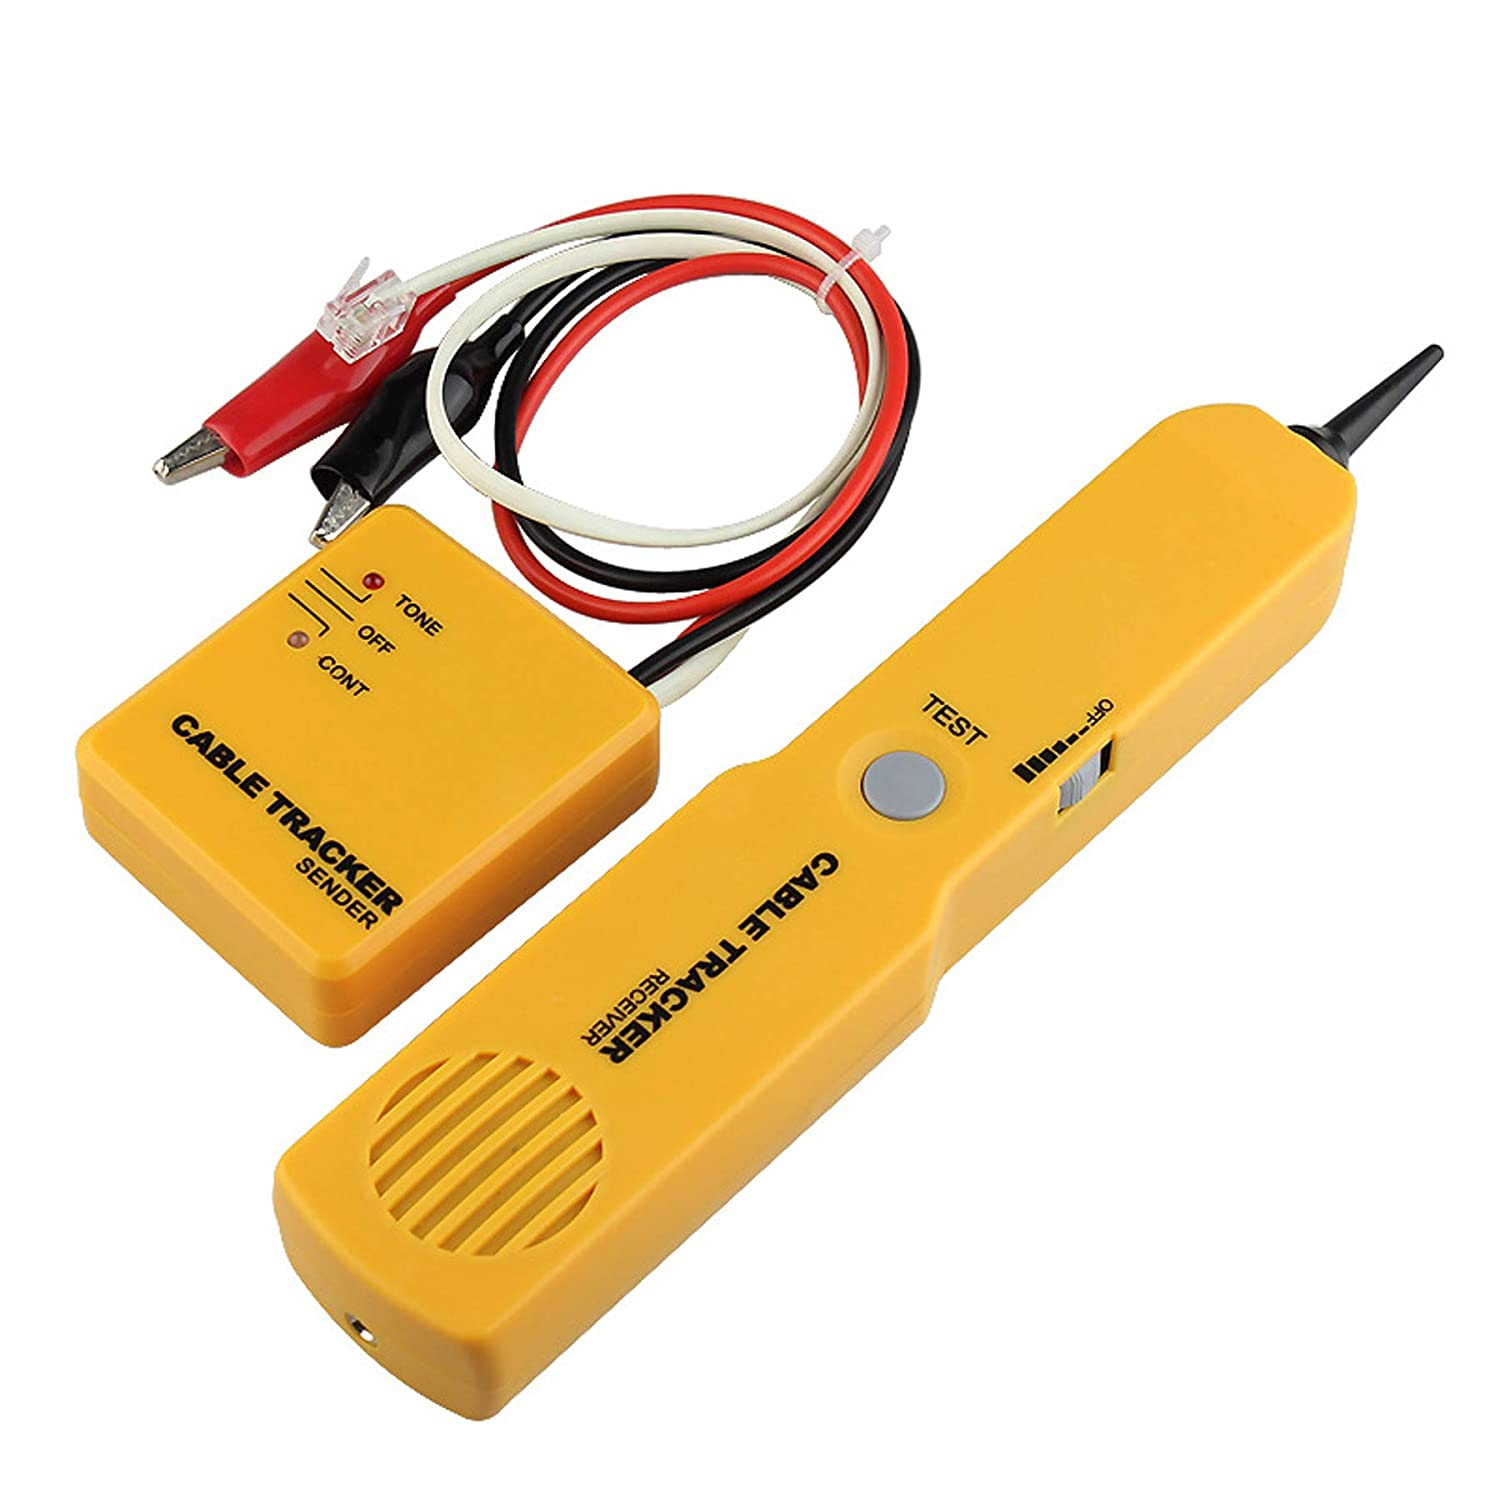 Electrical Wire Tracer Circuit Tester w/Tone Generator & Probe Kit, Cable Signal Locator Tester, Test Circuit Continuity, Network Telephone Line, Automotive Circuit Identify Tools w/Clips & RJ11 Plug